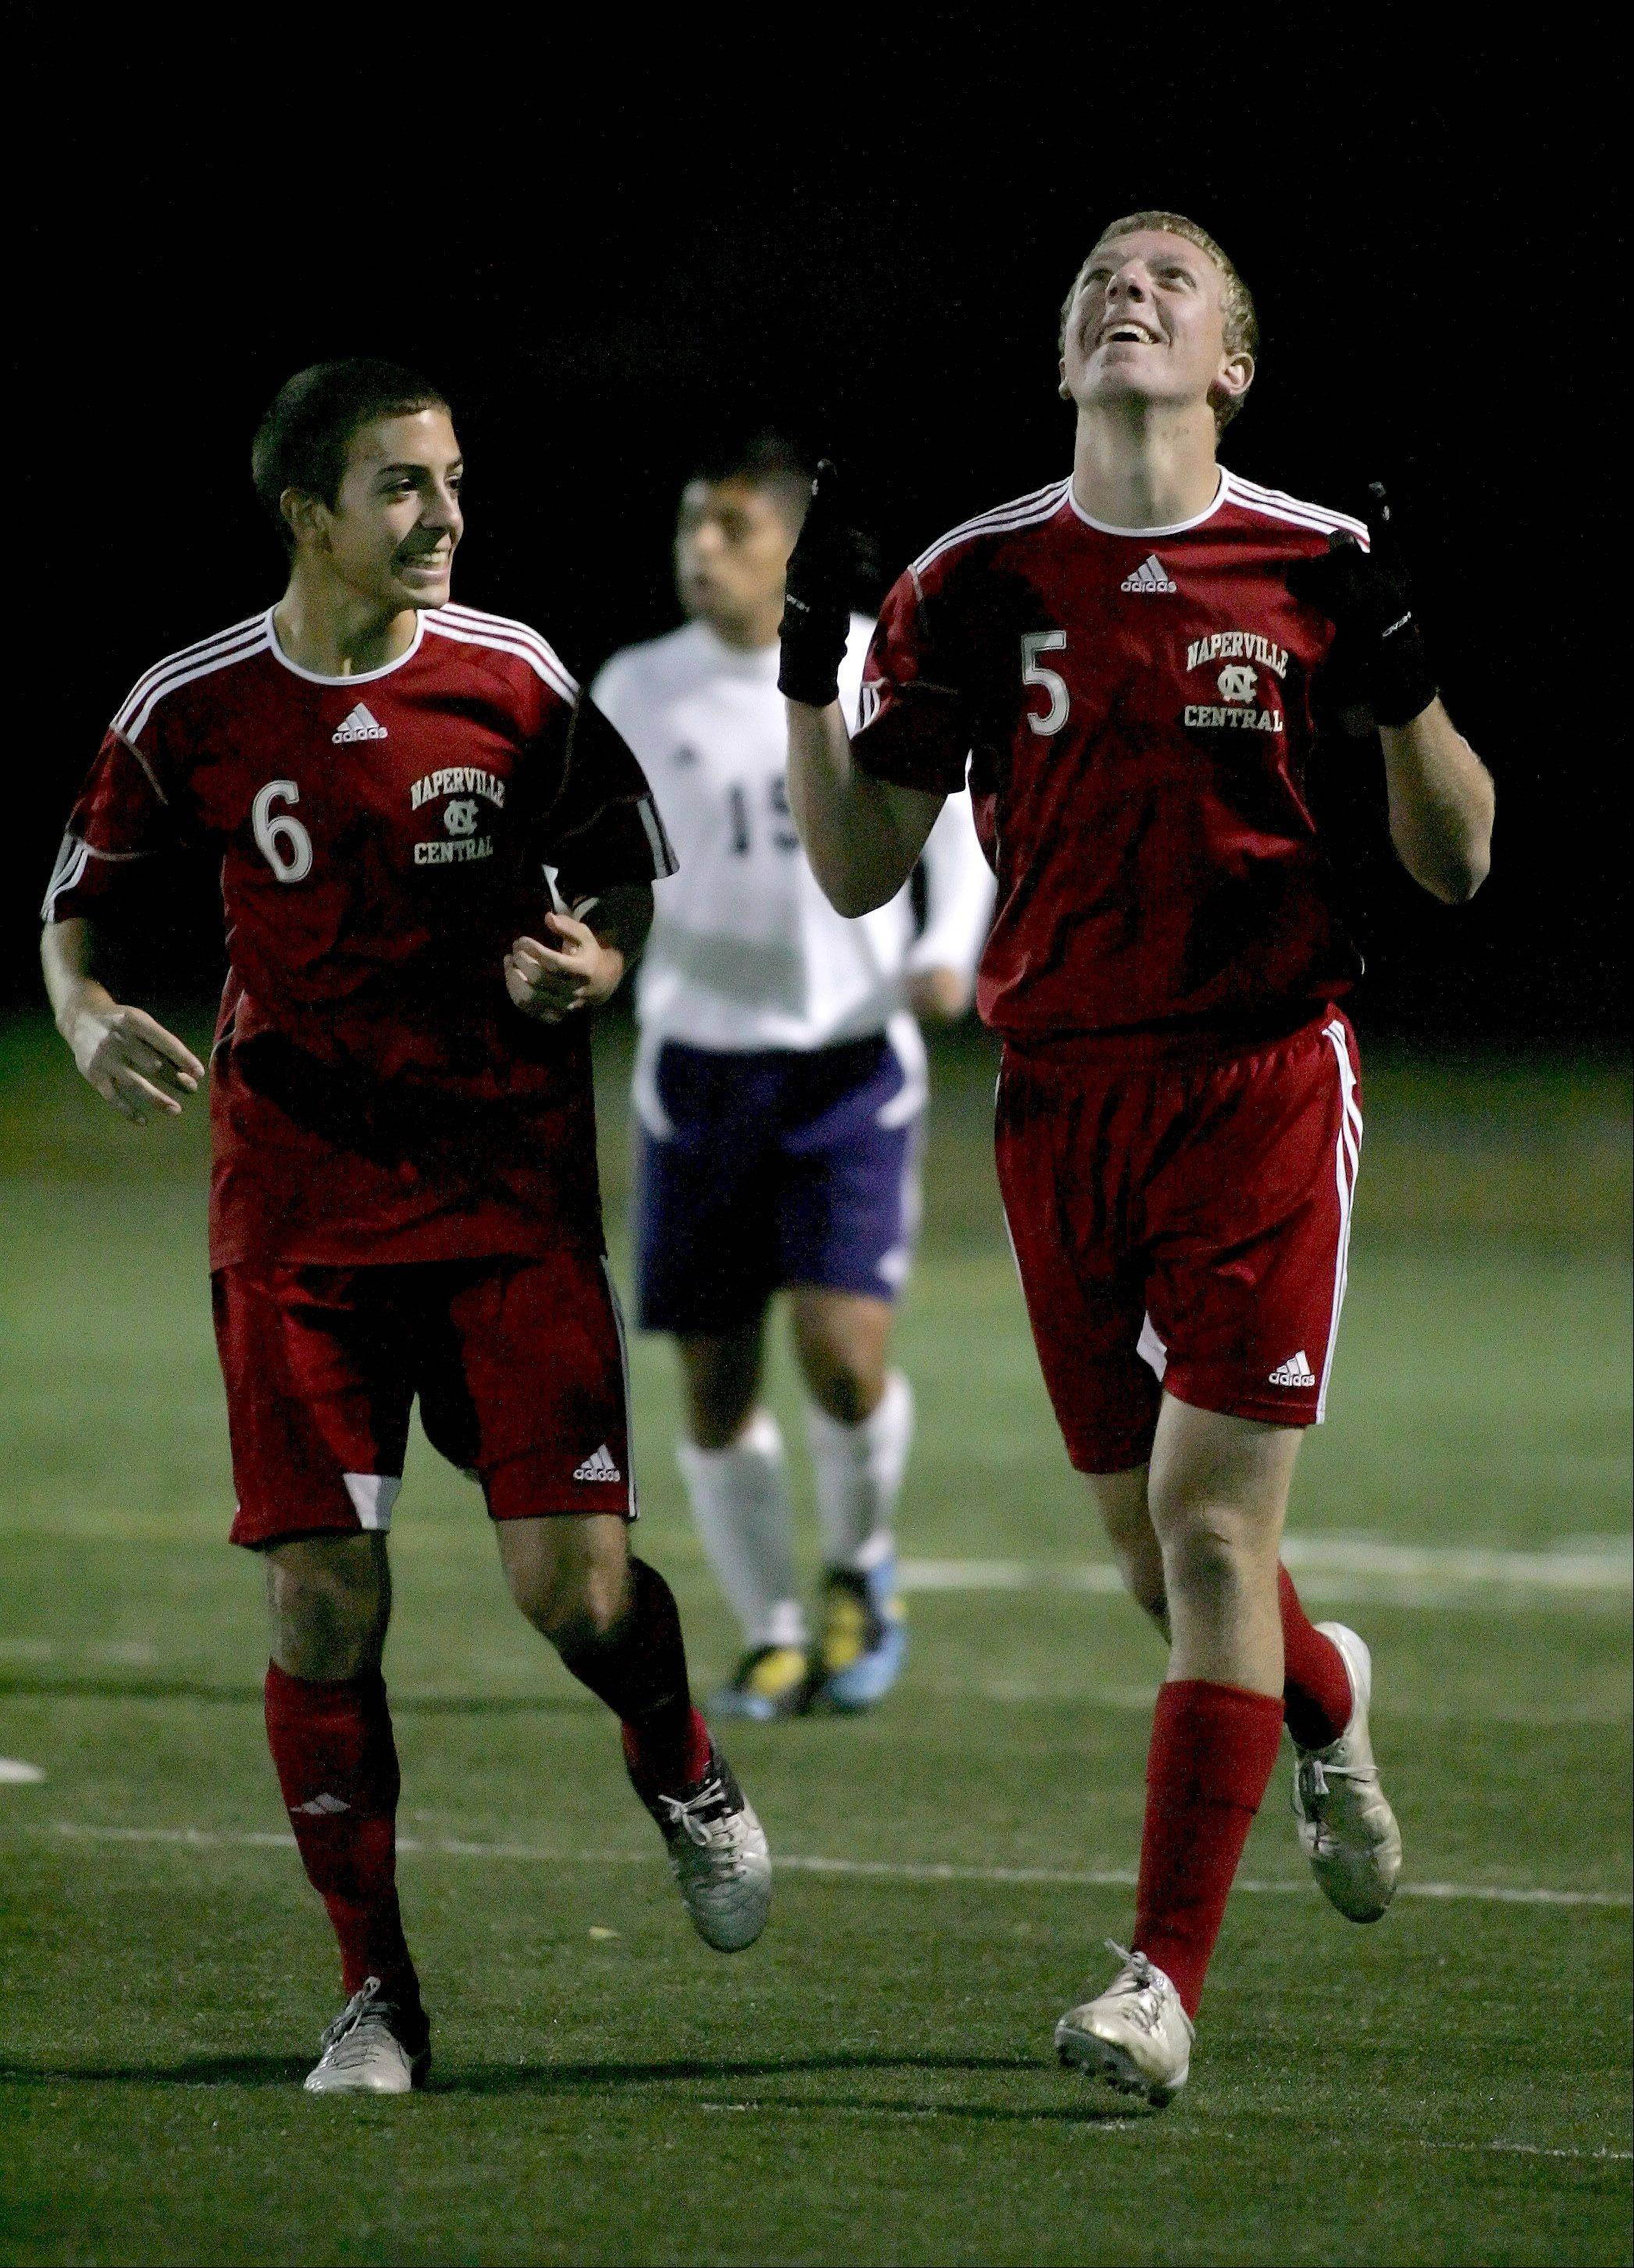 Pat Flynn, right, of Naperville Central celebrates his goal early in the first half with teammate Mike West, left, during boys soccer action at West Chicago on Tuesday.